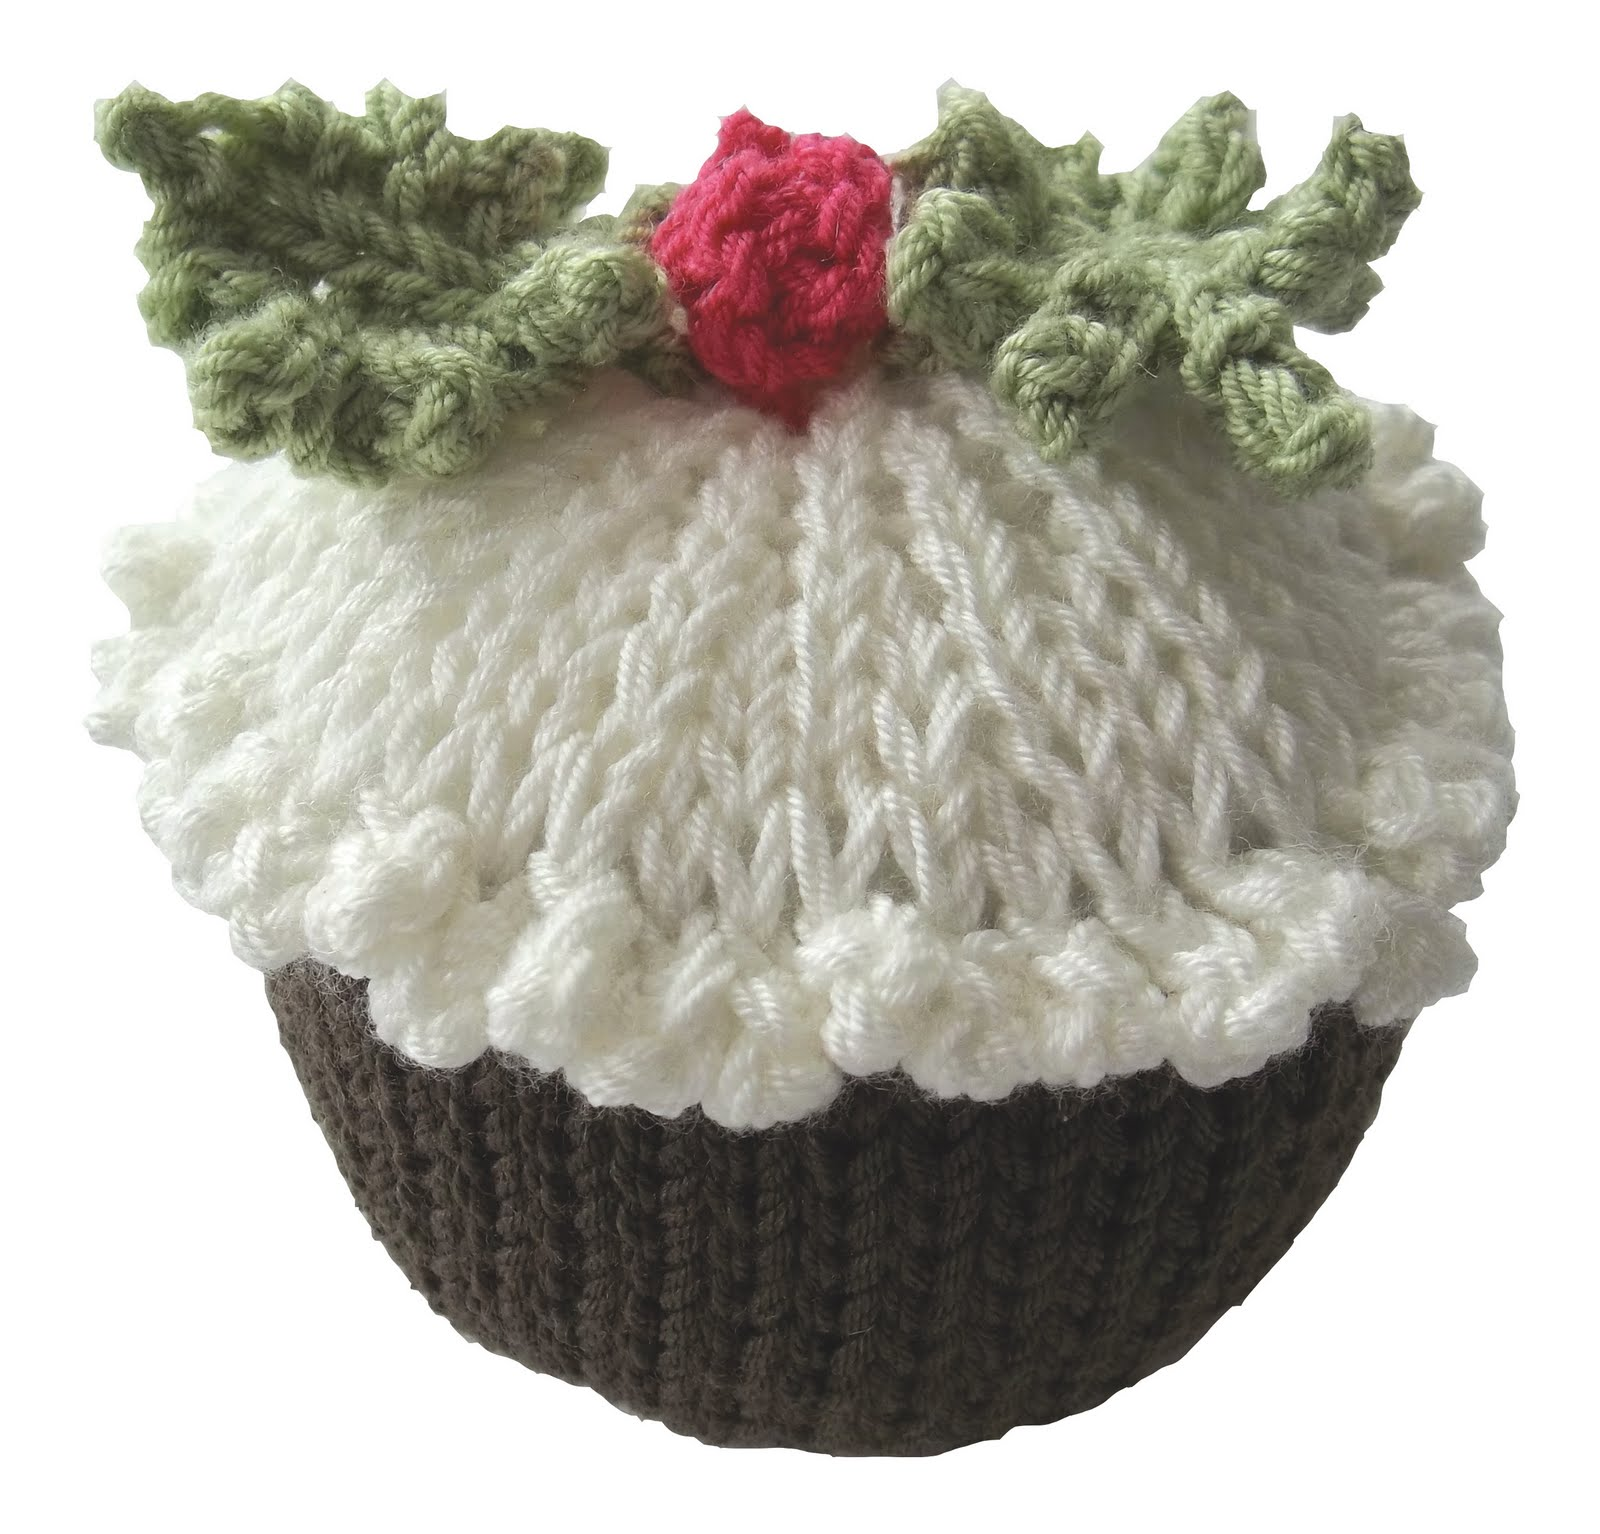 Knitting Pattern For Mini Xmas Pudding : Christmas Pudding Knitting Workshop and Hand Knitting Patterns